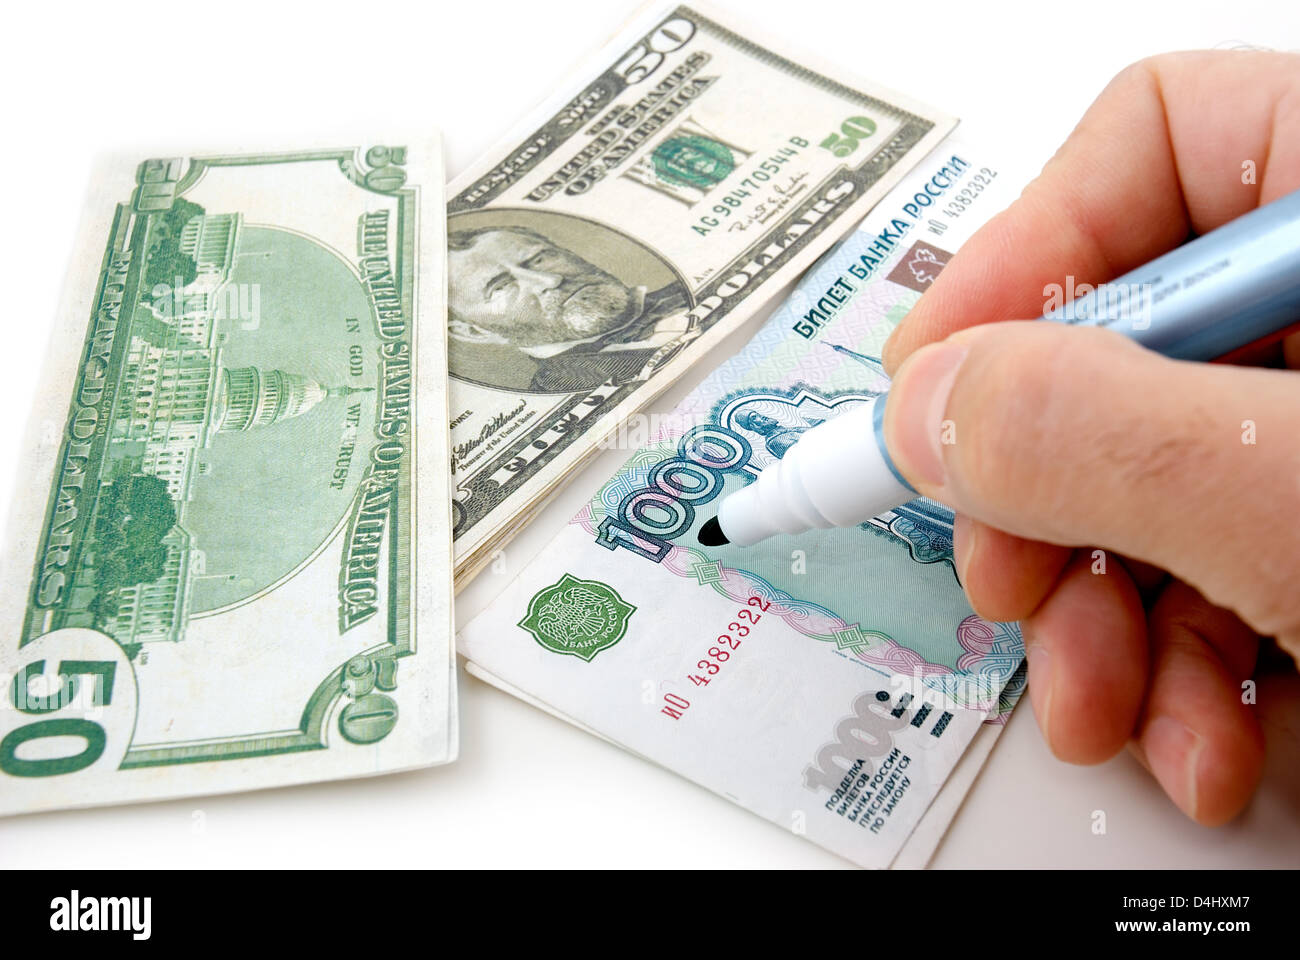 Drawing of monetary denominations, rubles and dollars - Stock Image